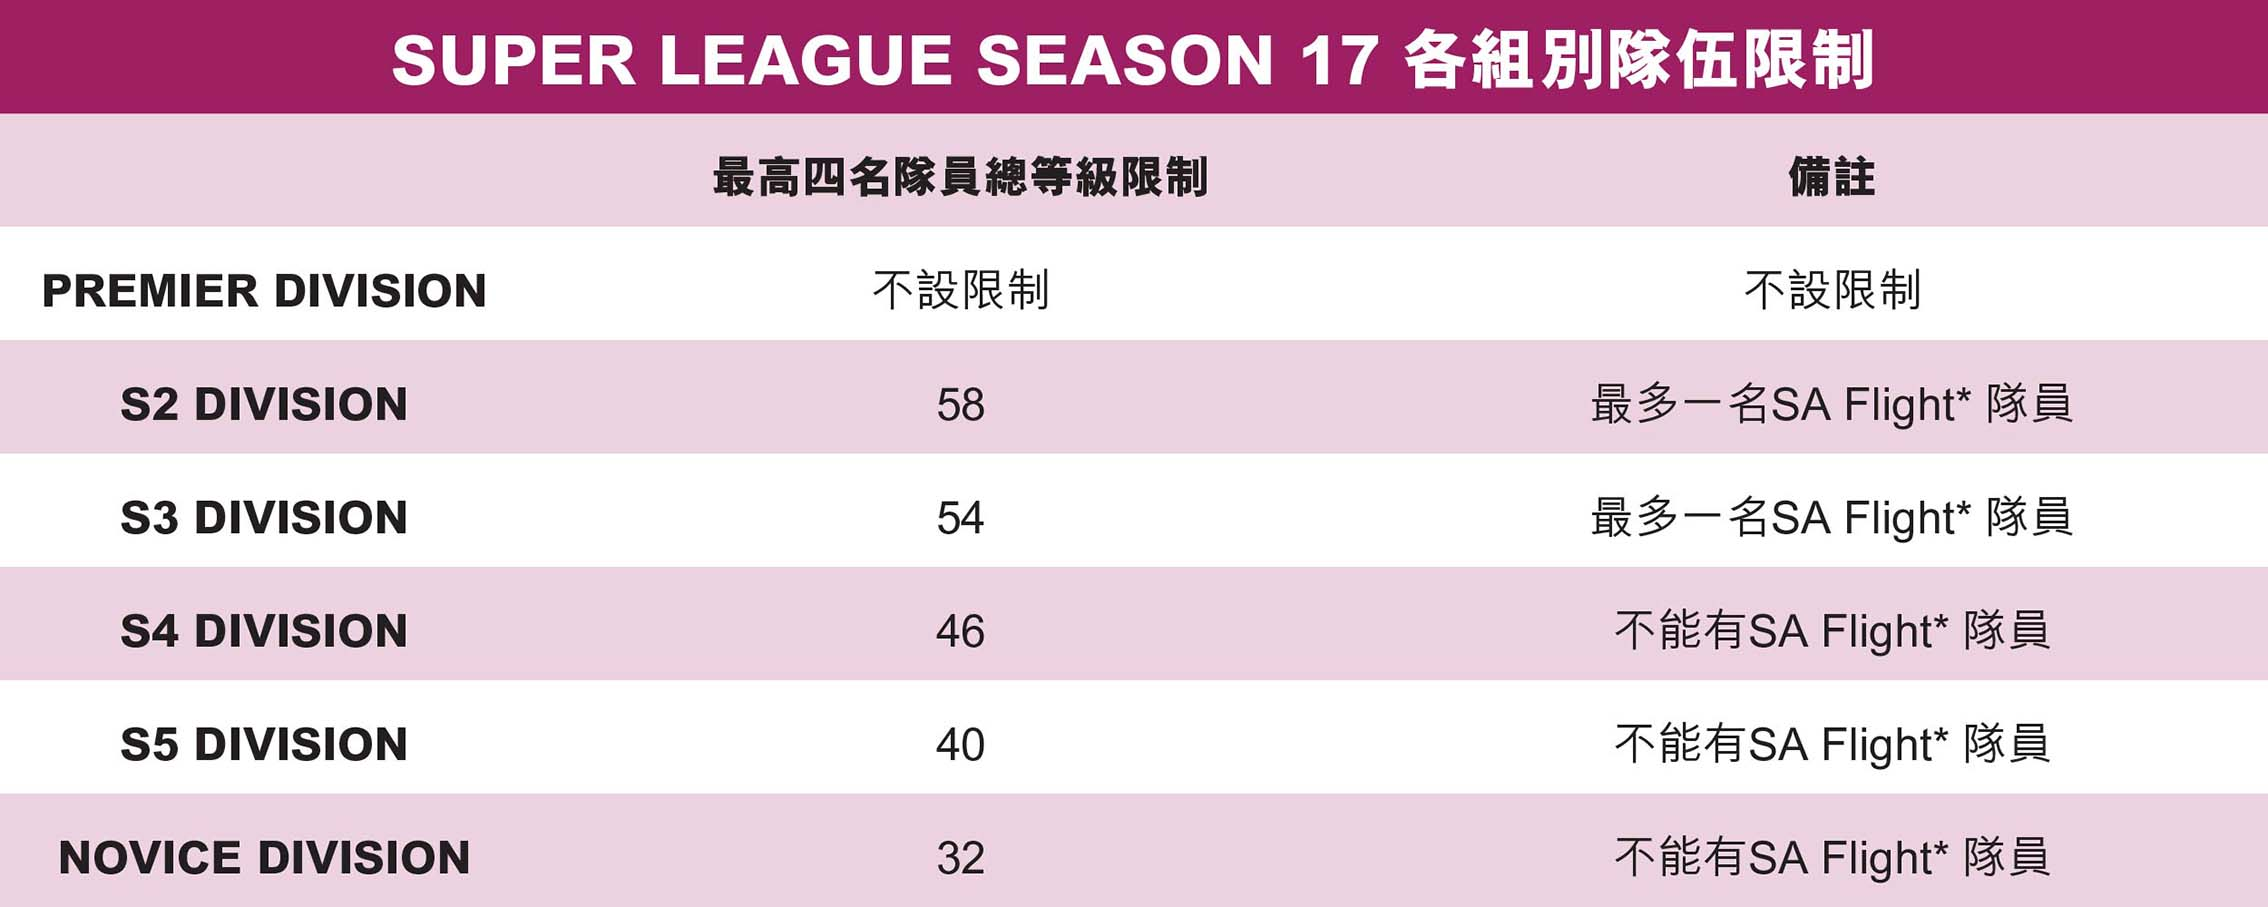 SUPER LEAGUE SEASON 17 limit